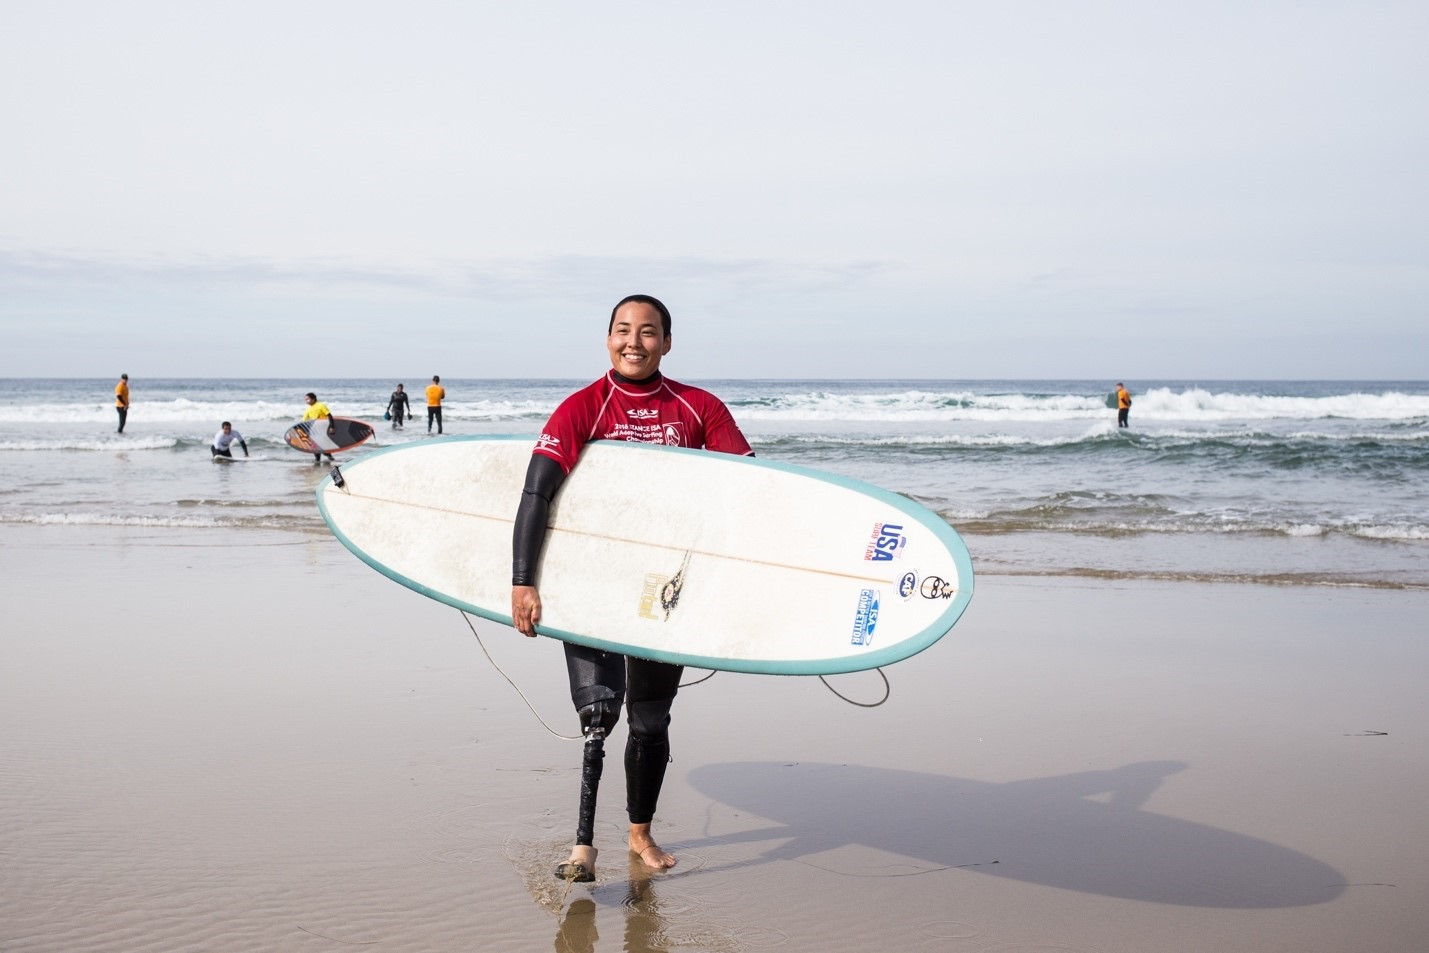 Women's divisions will feature for the first time at the 2017 World Adaptive Surfing Championships ©ISA